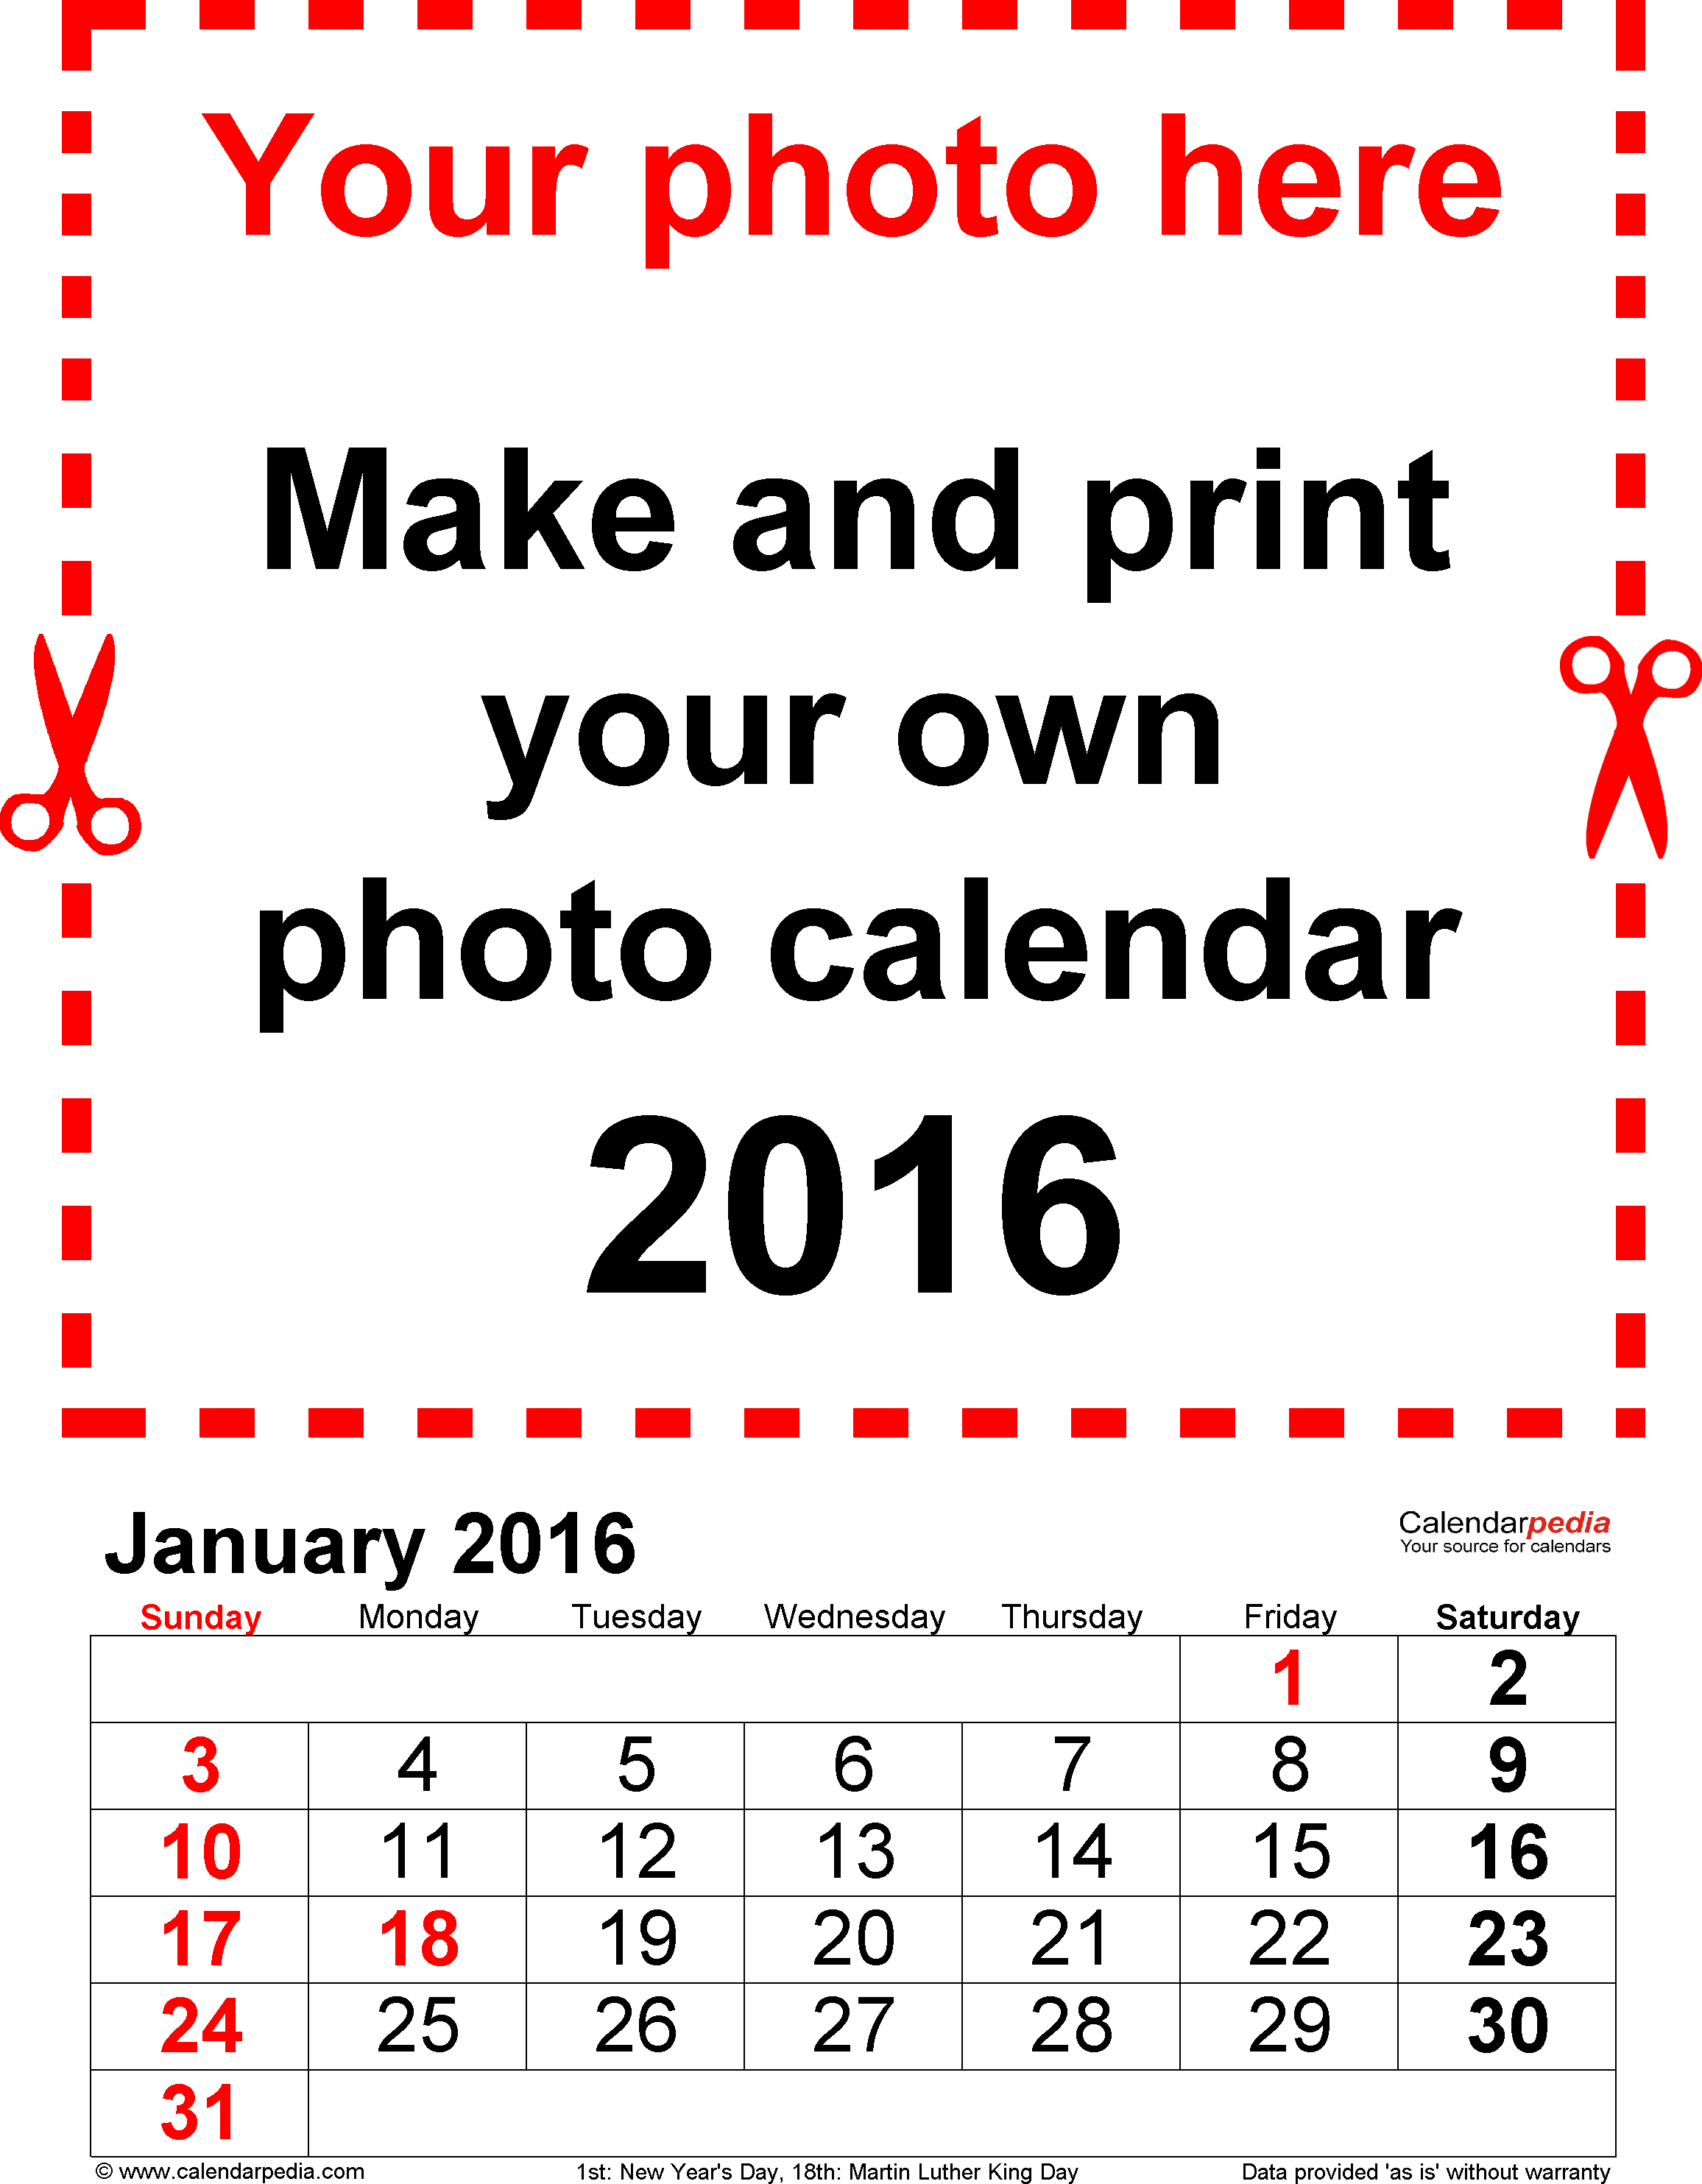 Download Template 2: Photo calendar 2016 for Excel, 12 pages, portrait format, large numerals for easy reading